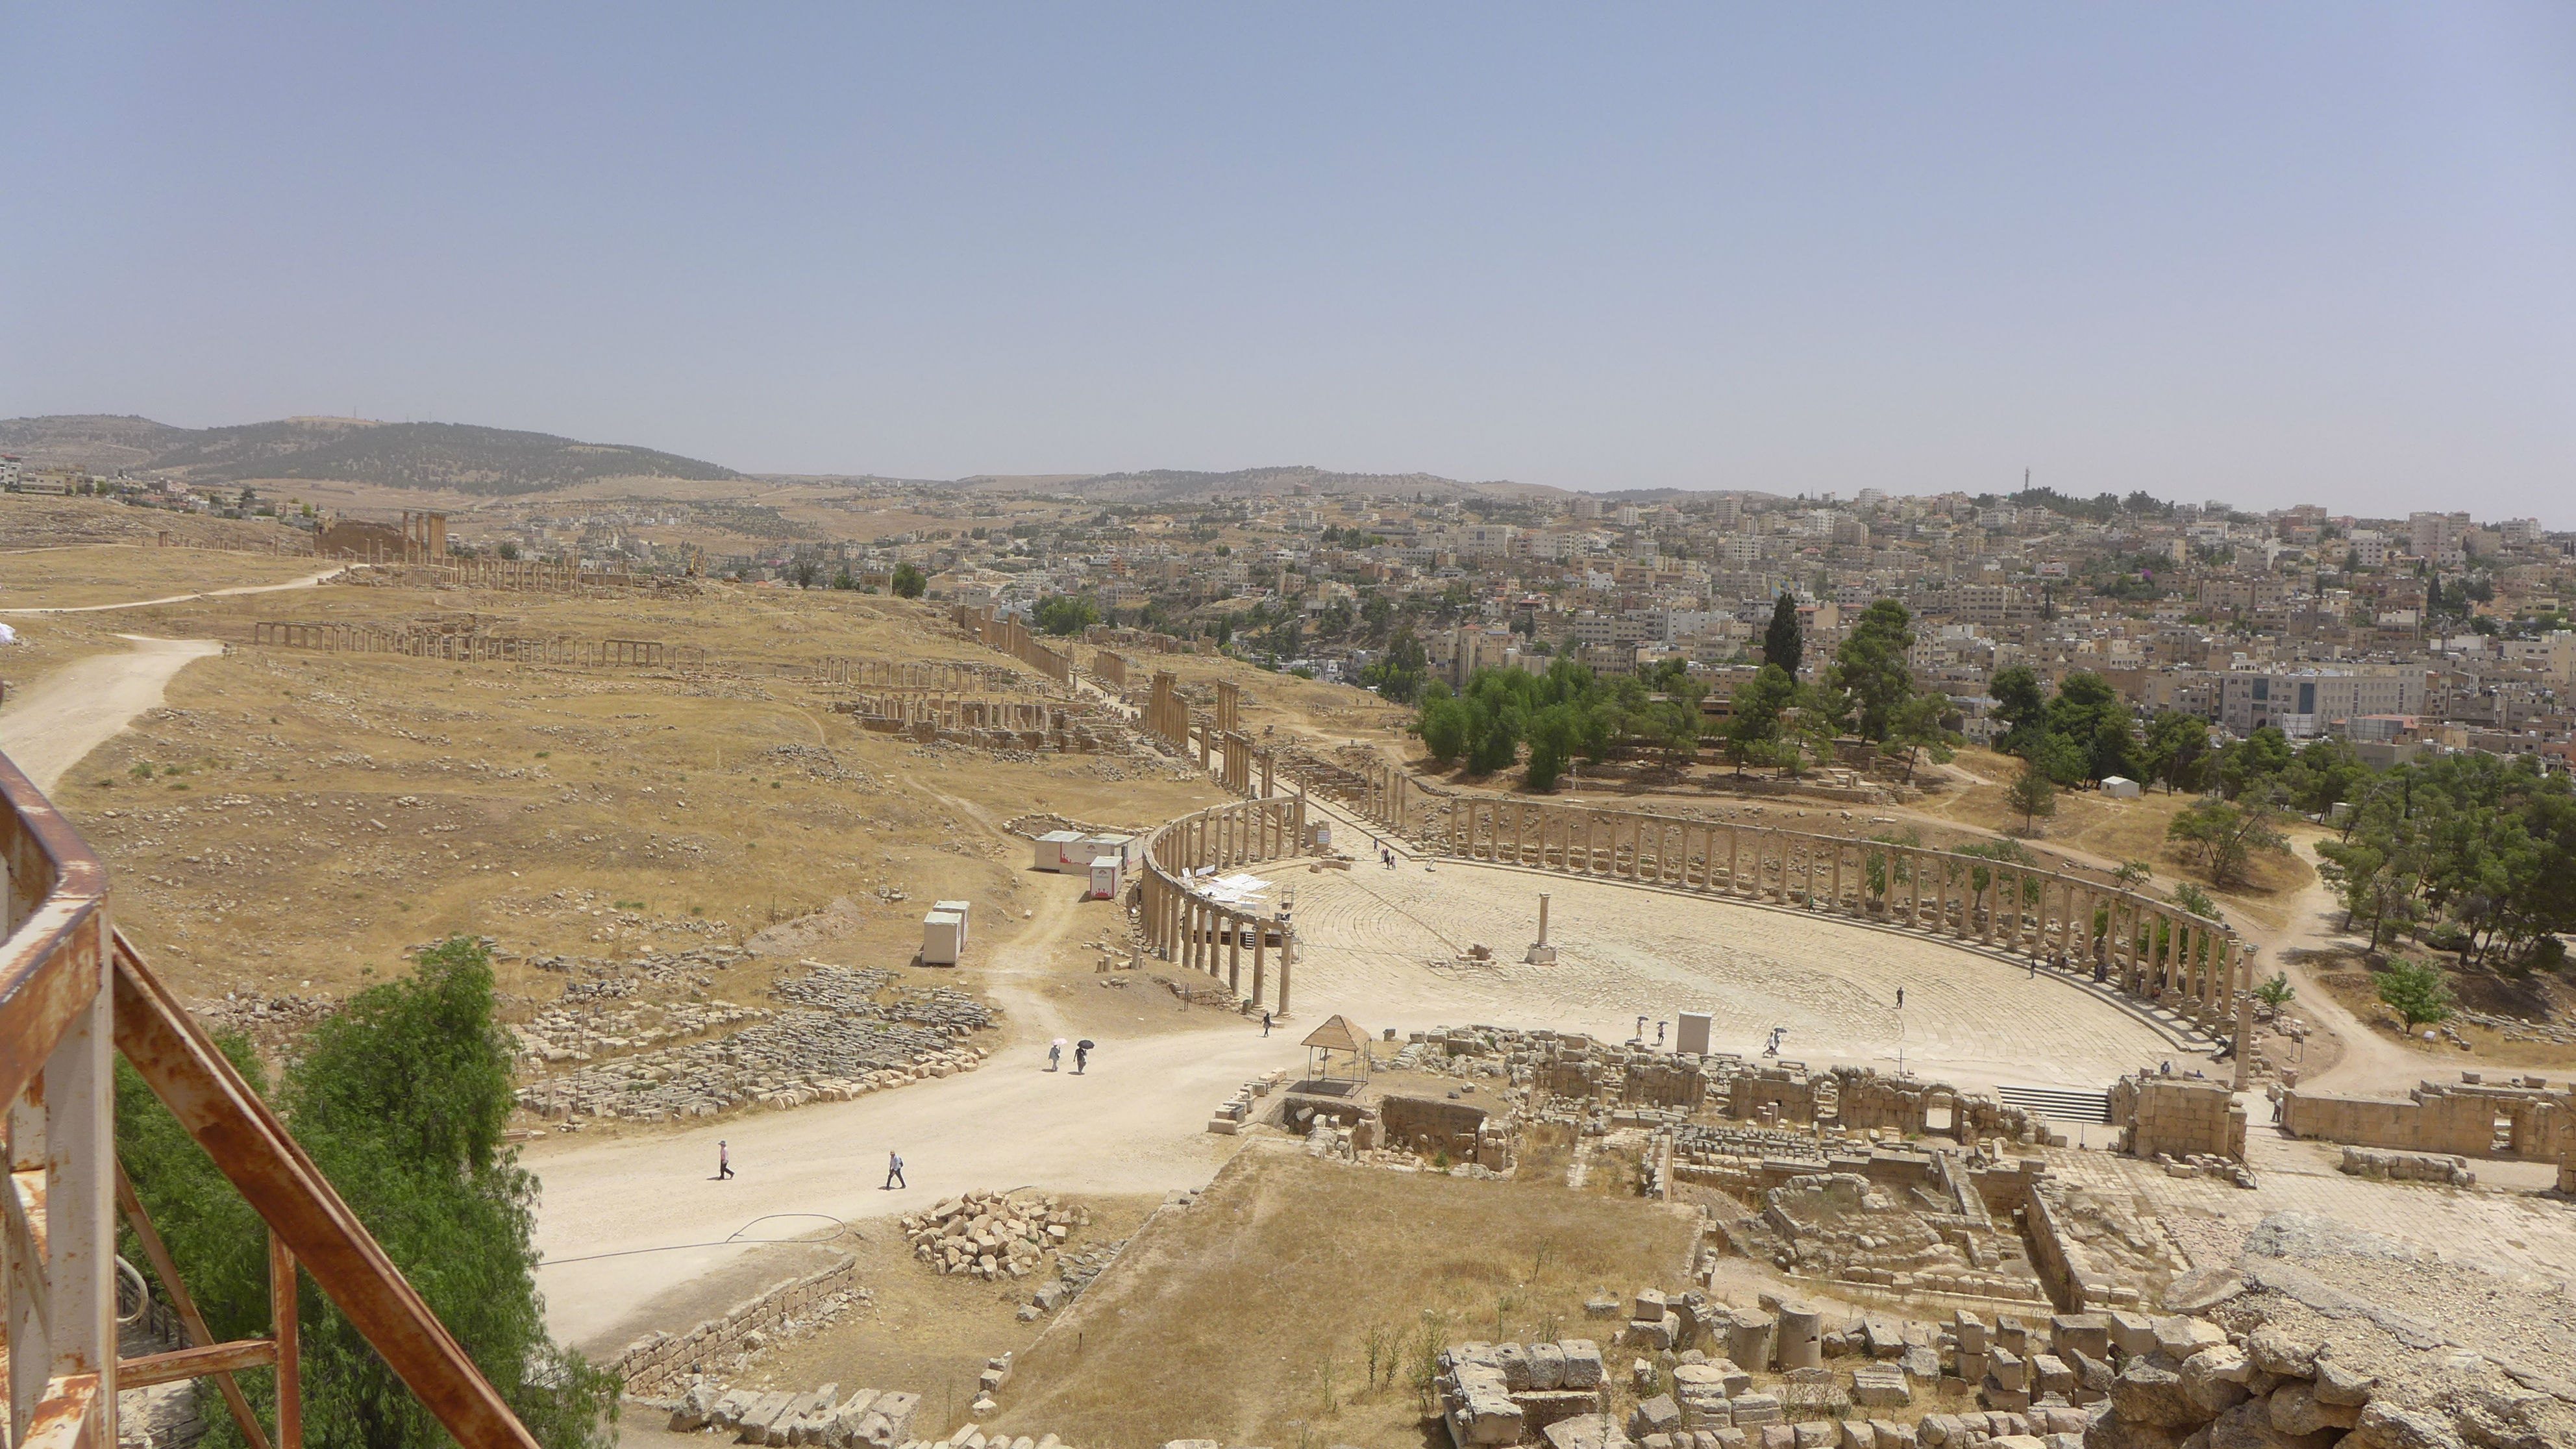 view of old city and landscape in Jordan